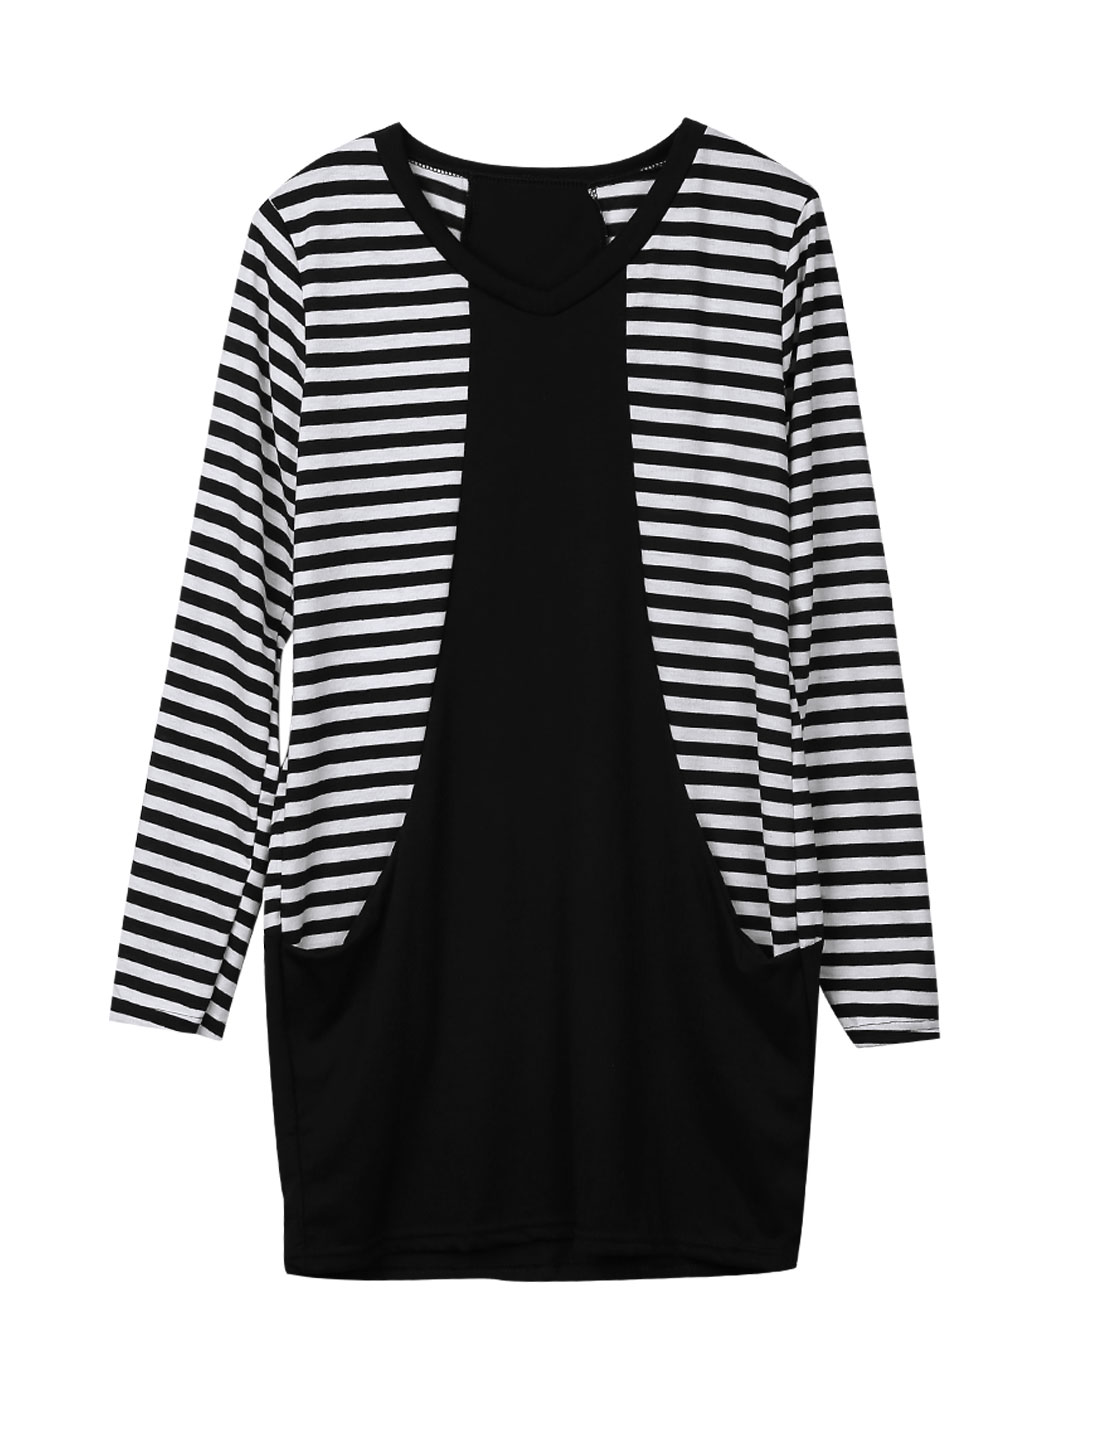 Lady Black White Pullover Stripes Front Pockets Splice Unlined Dress XS